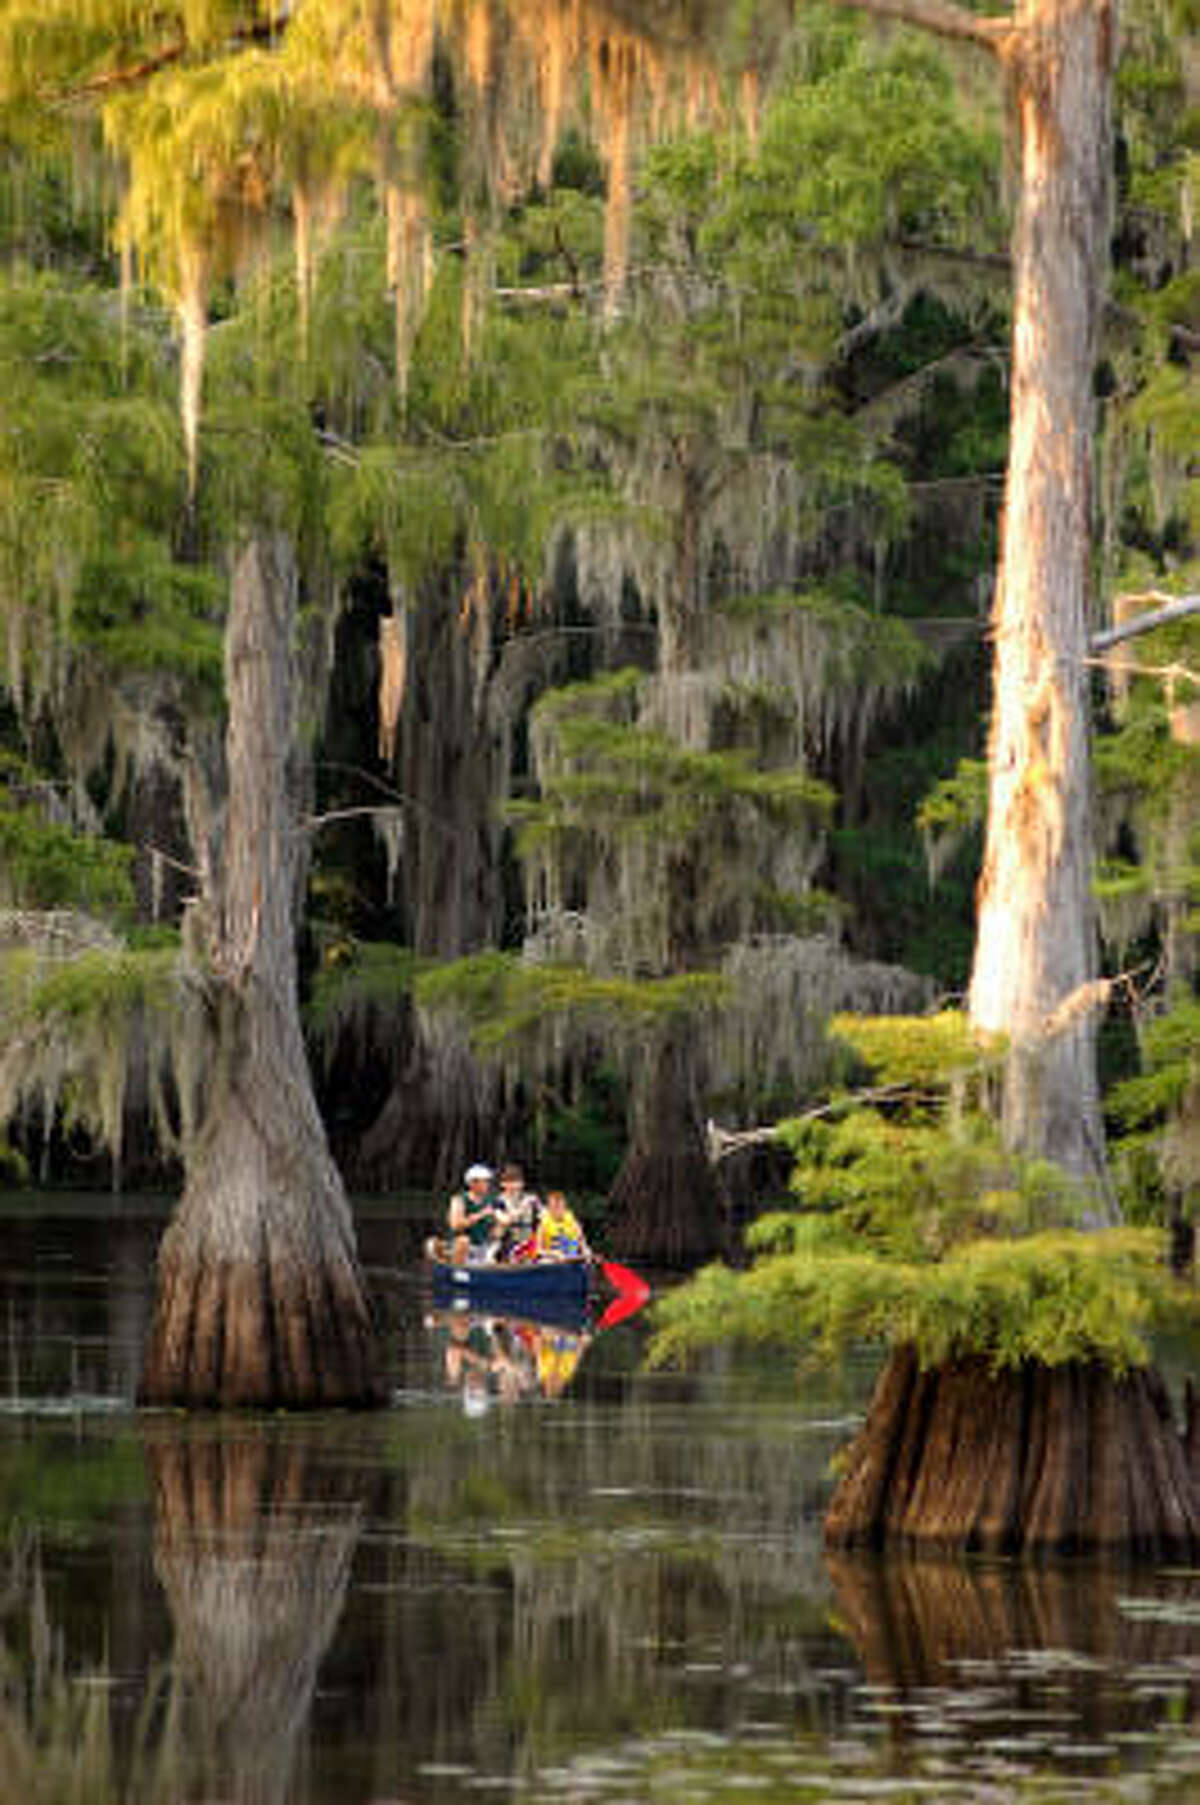 A new online reservation system for Texas state parks was launched last month to allow prospective visitors to check campsite availability and reserve a site. The new system is more convenient and eliminates the $3 service charge from the previous online reservation system.